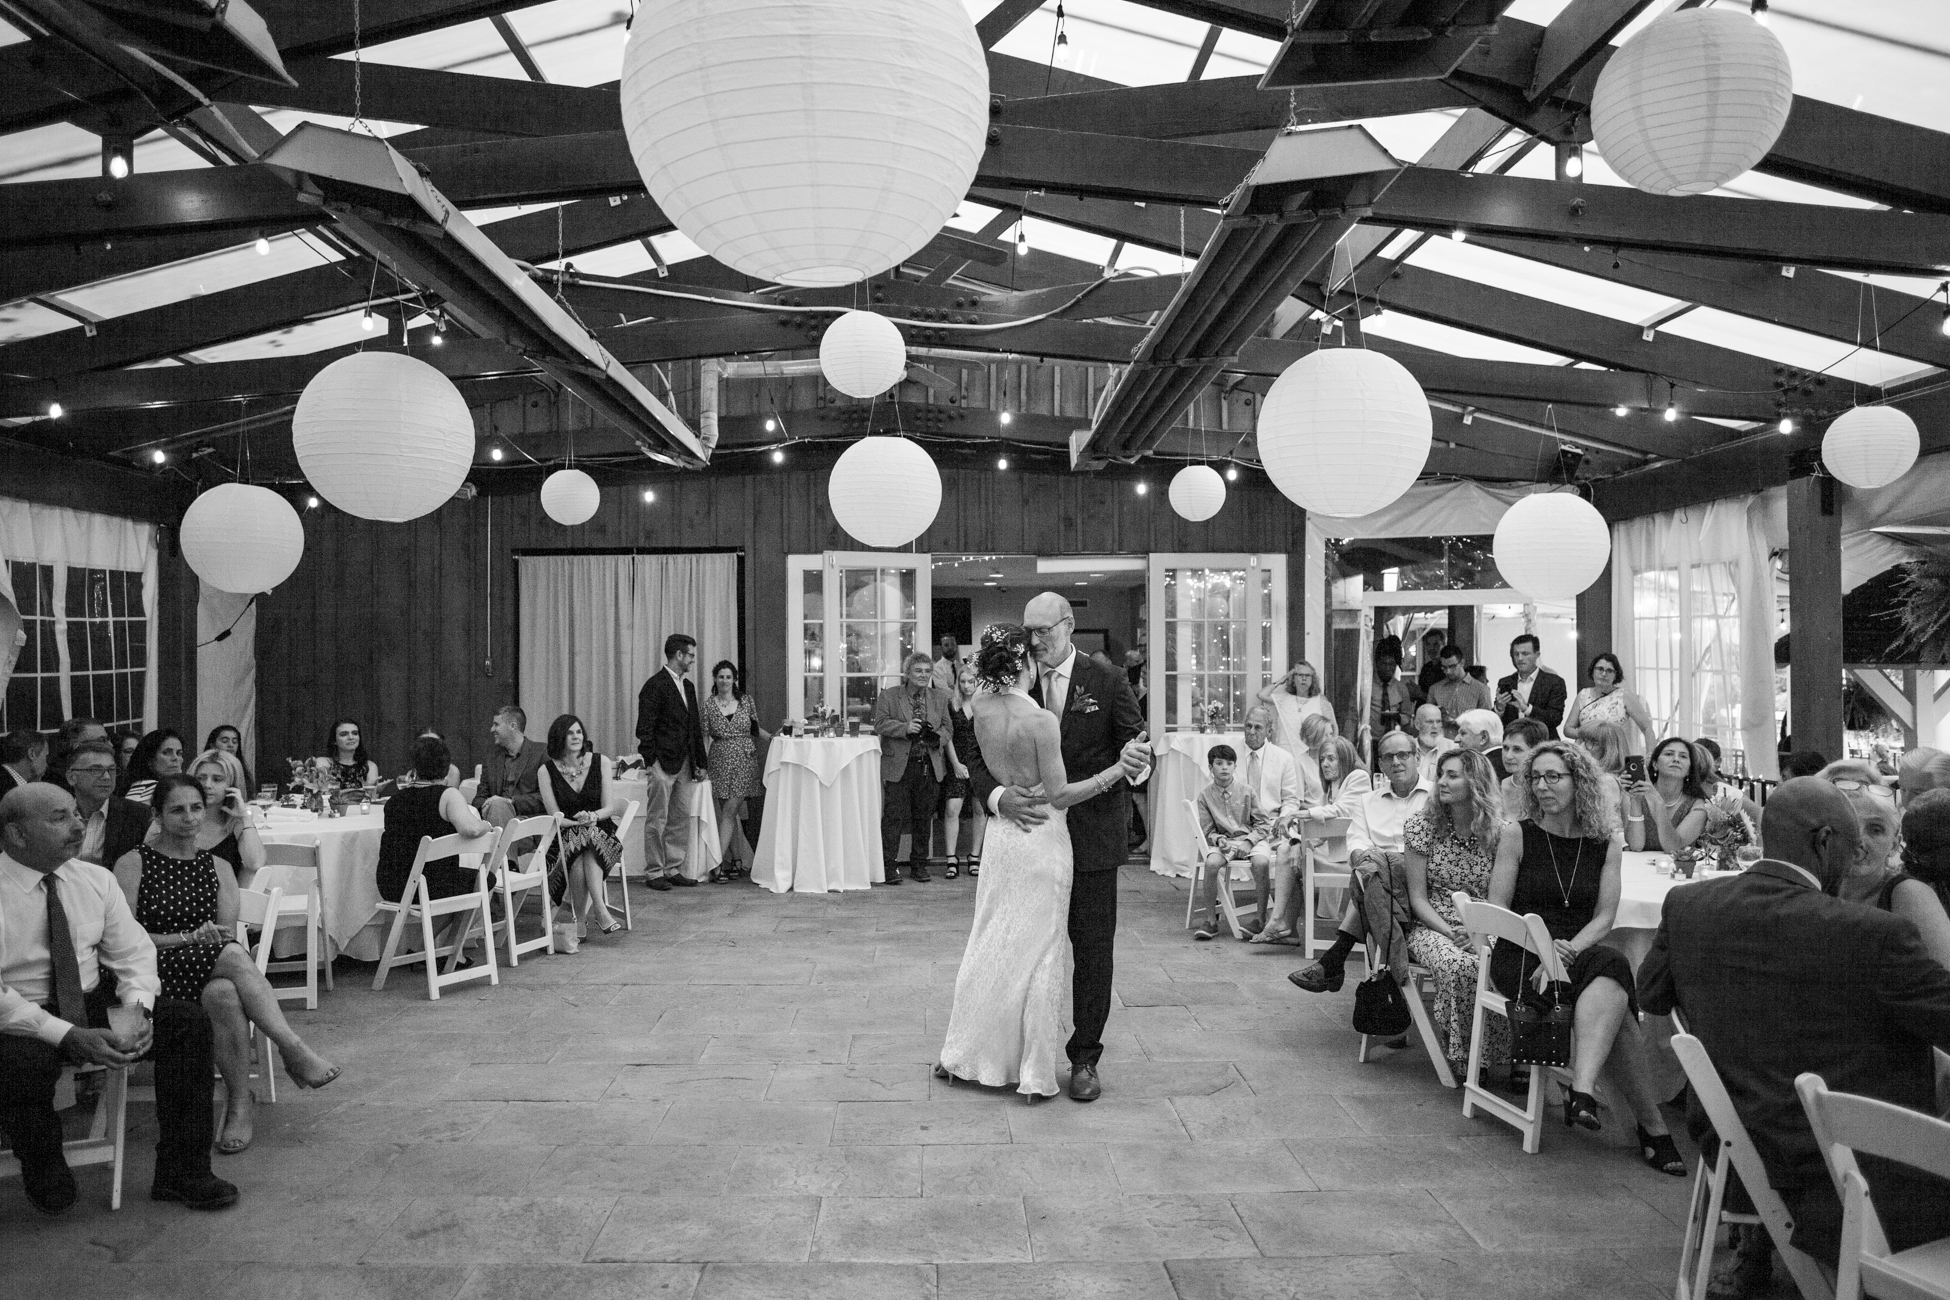 Melton-Kessler Wedding at Valley Green Inn by Avi Loren Fox LLC-52.jpg